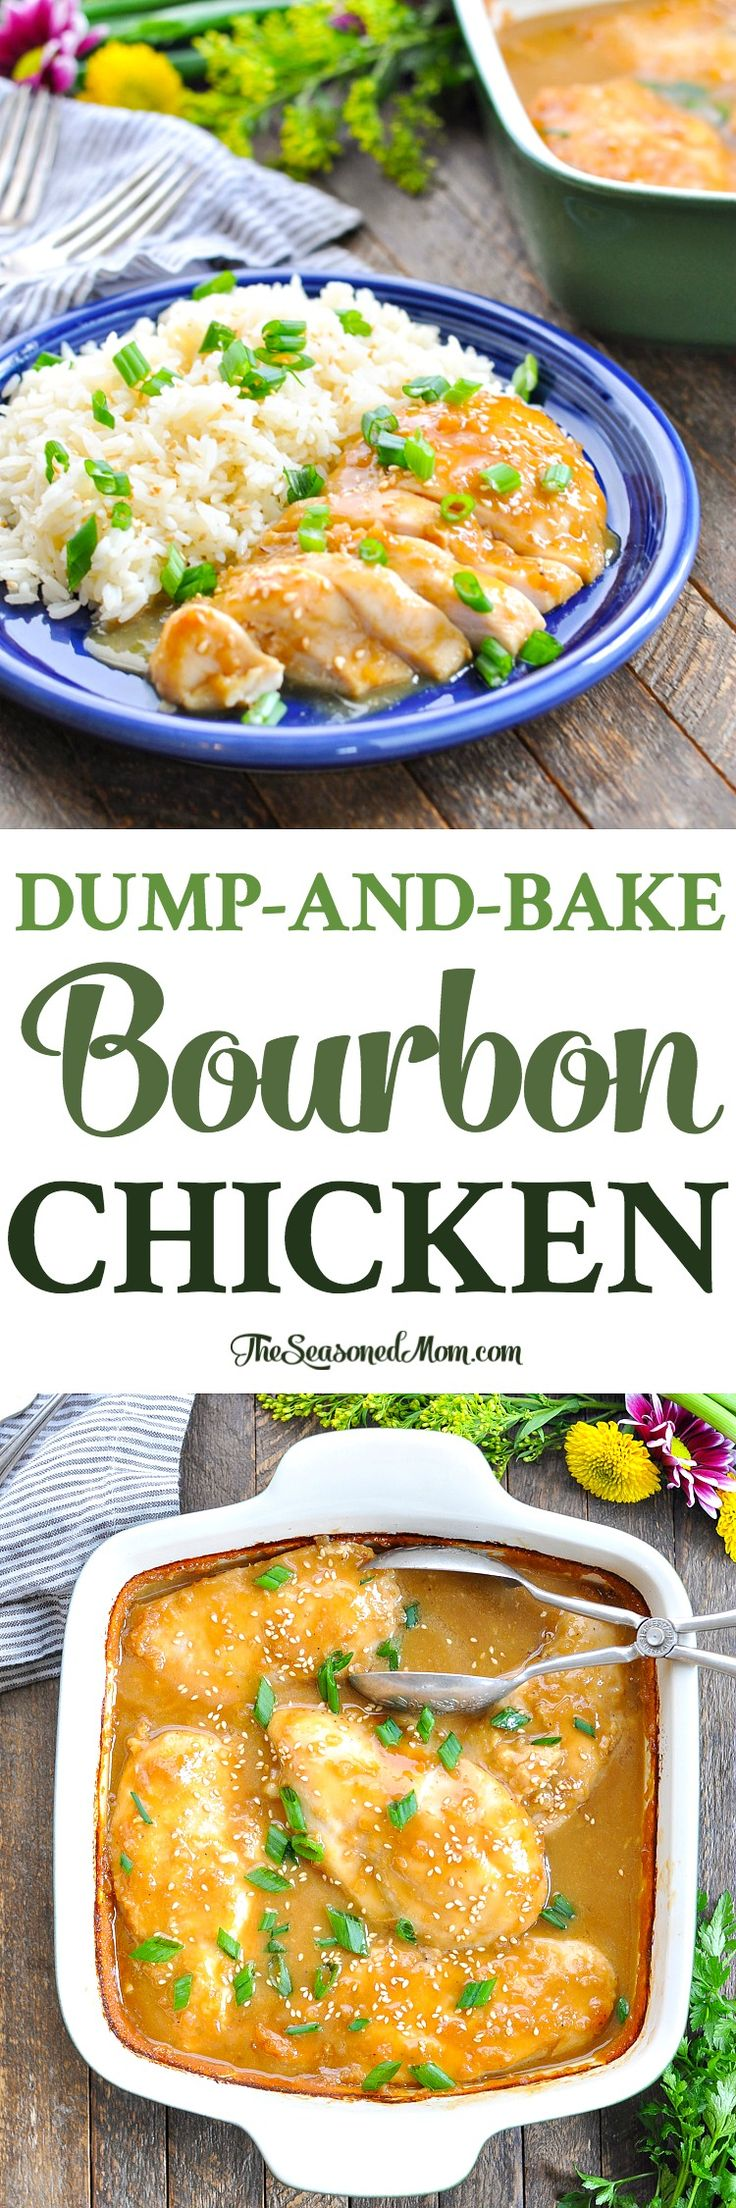 Long vertical image of Dump-and-Bake Bourbon Chicken